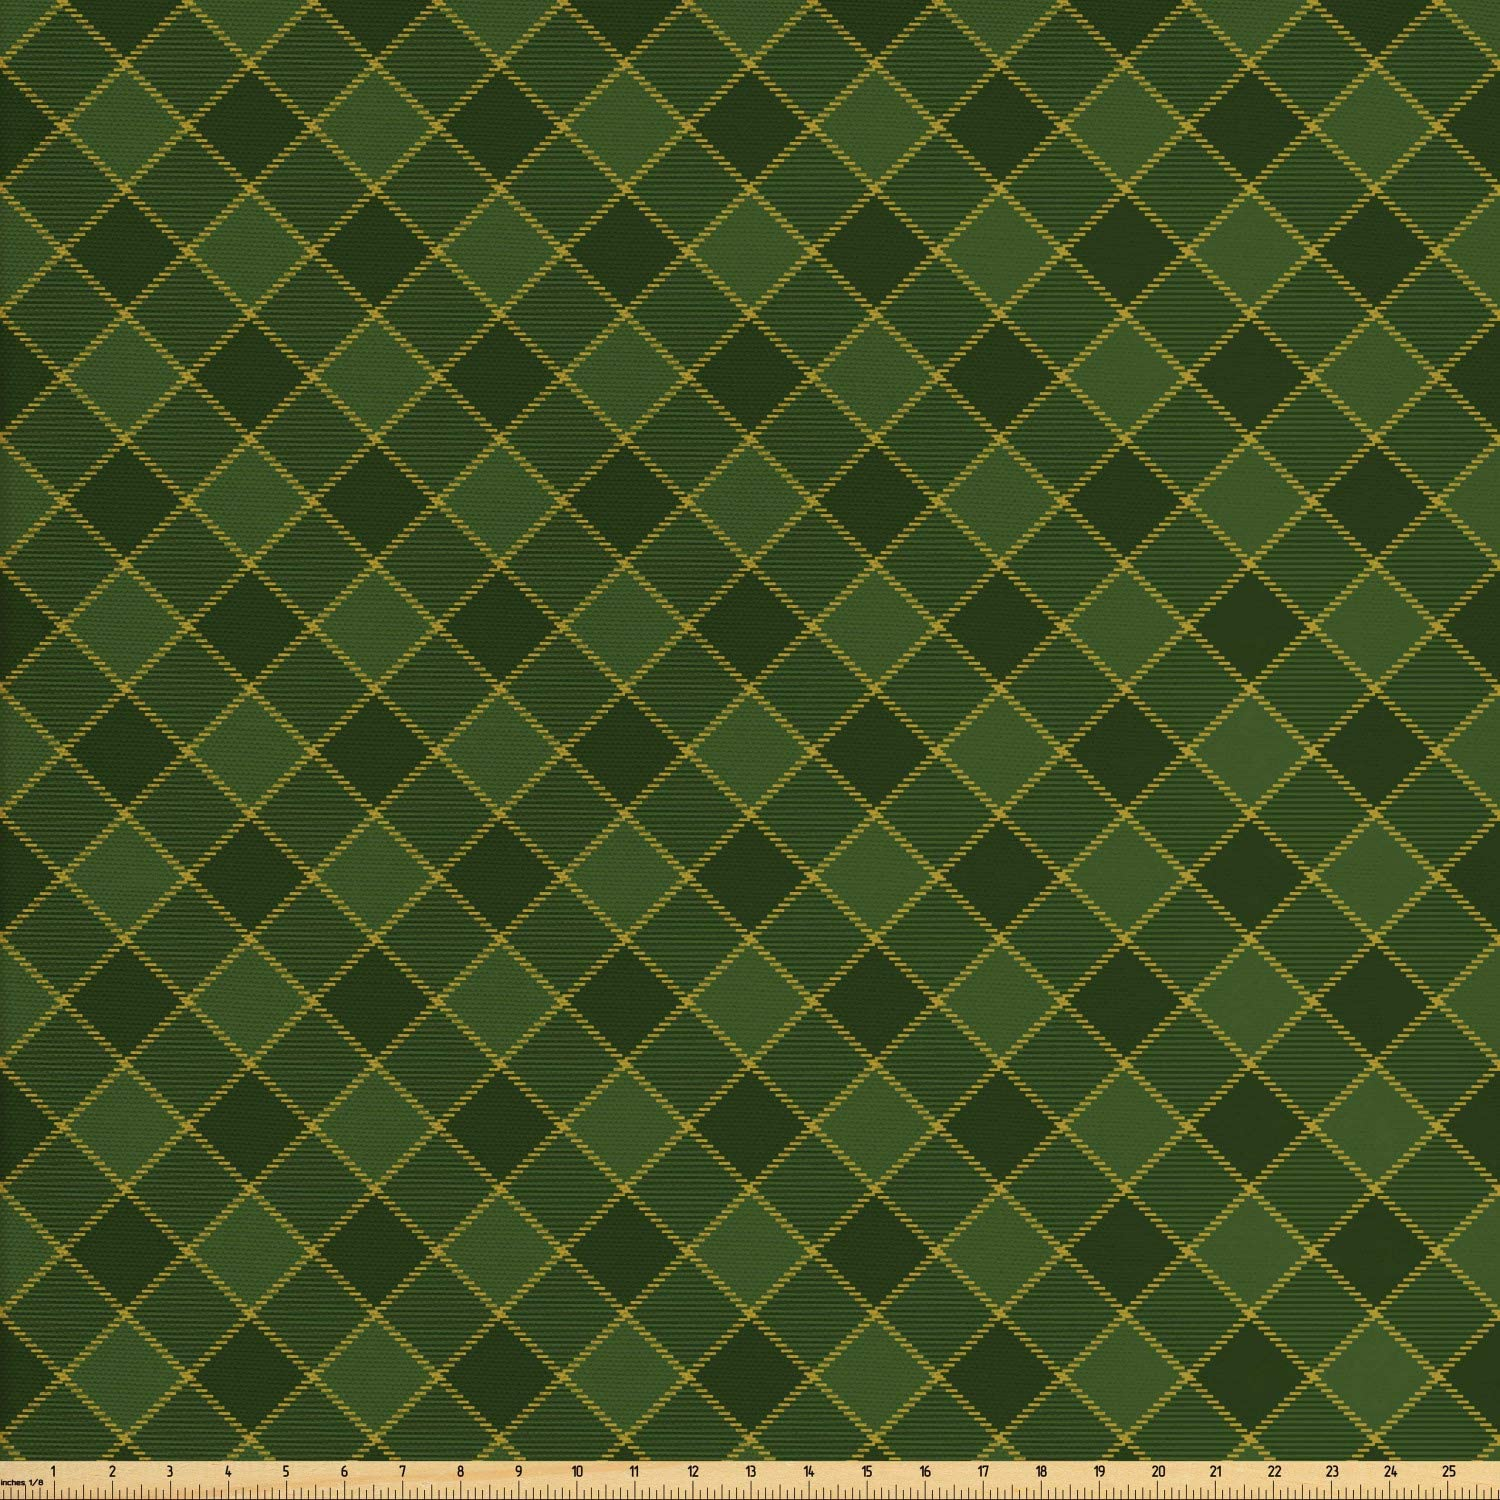 Lunarable Green Fabric by The Yard, Traditional Old Fashioned Argyle Pattern Retro Style Plaid, Decorative Fabric for Upholstery and Home Accents, 3 Yards, Forest Green